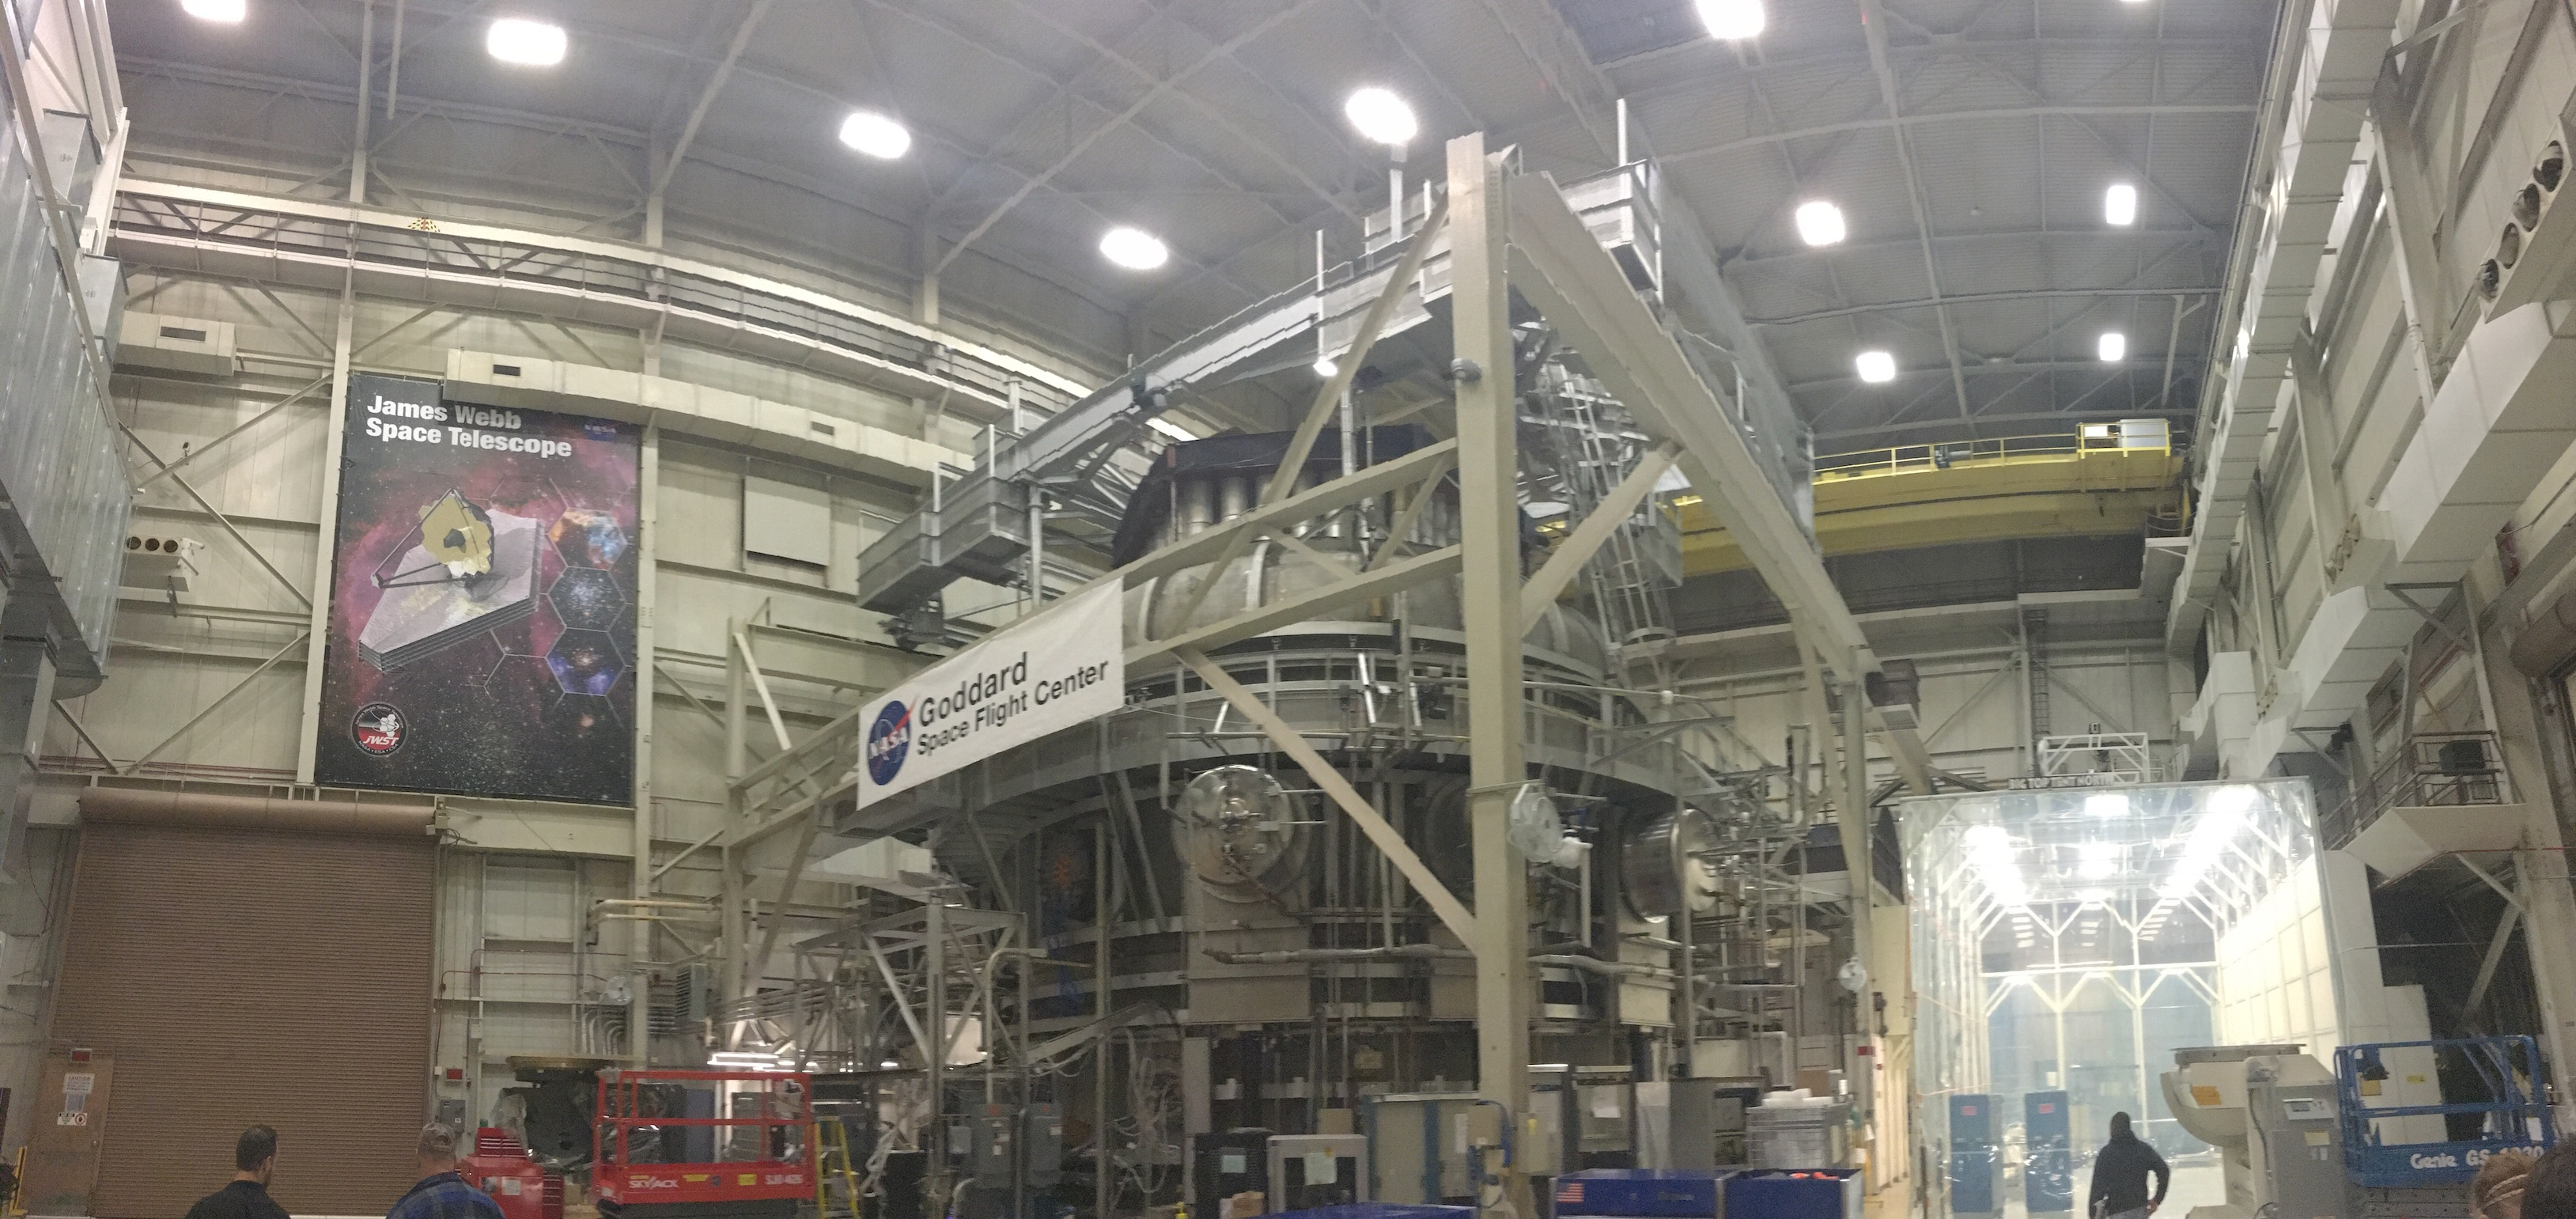 Thermal Vacuum Test Chamber for JWST